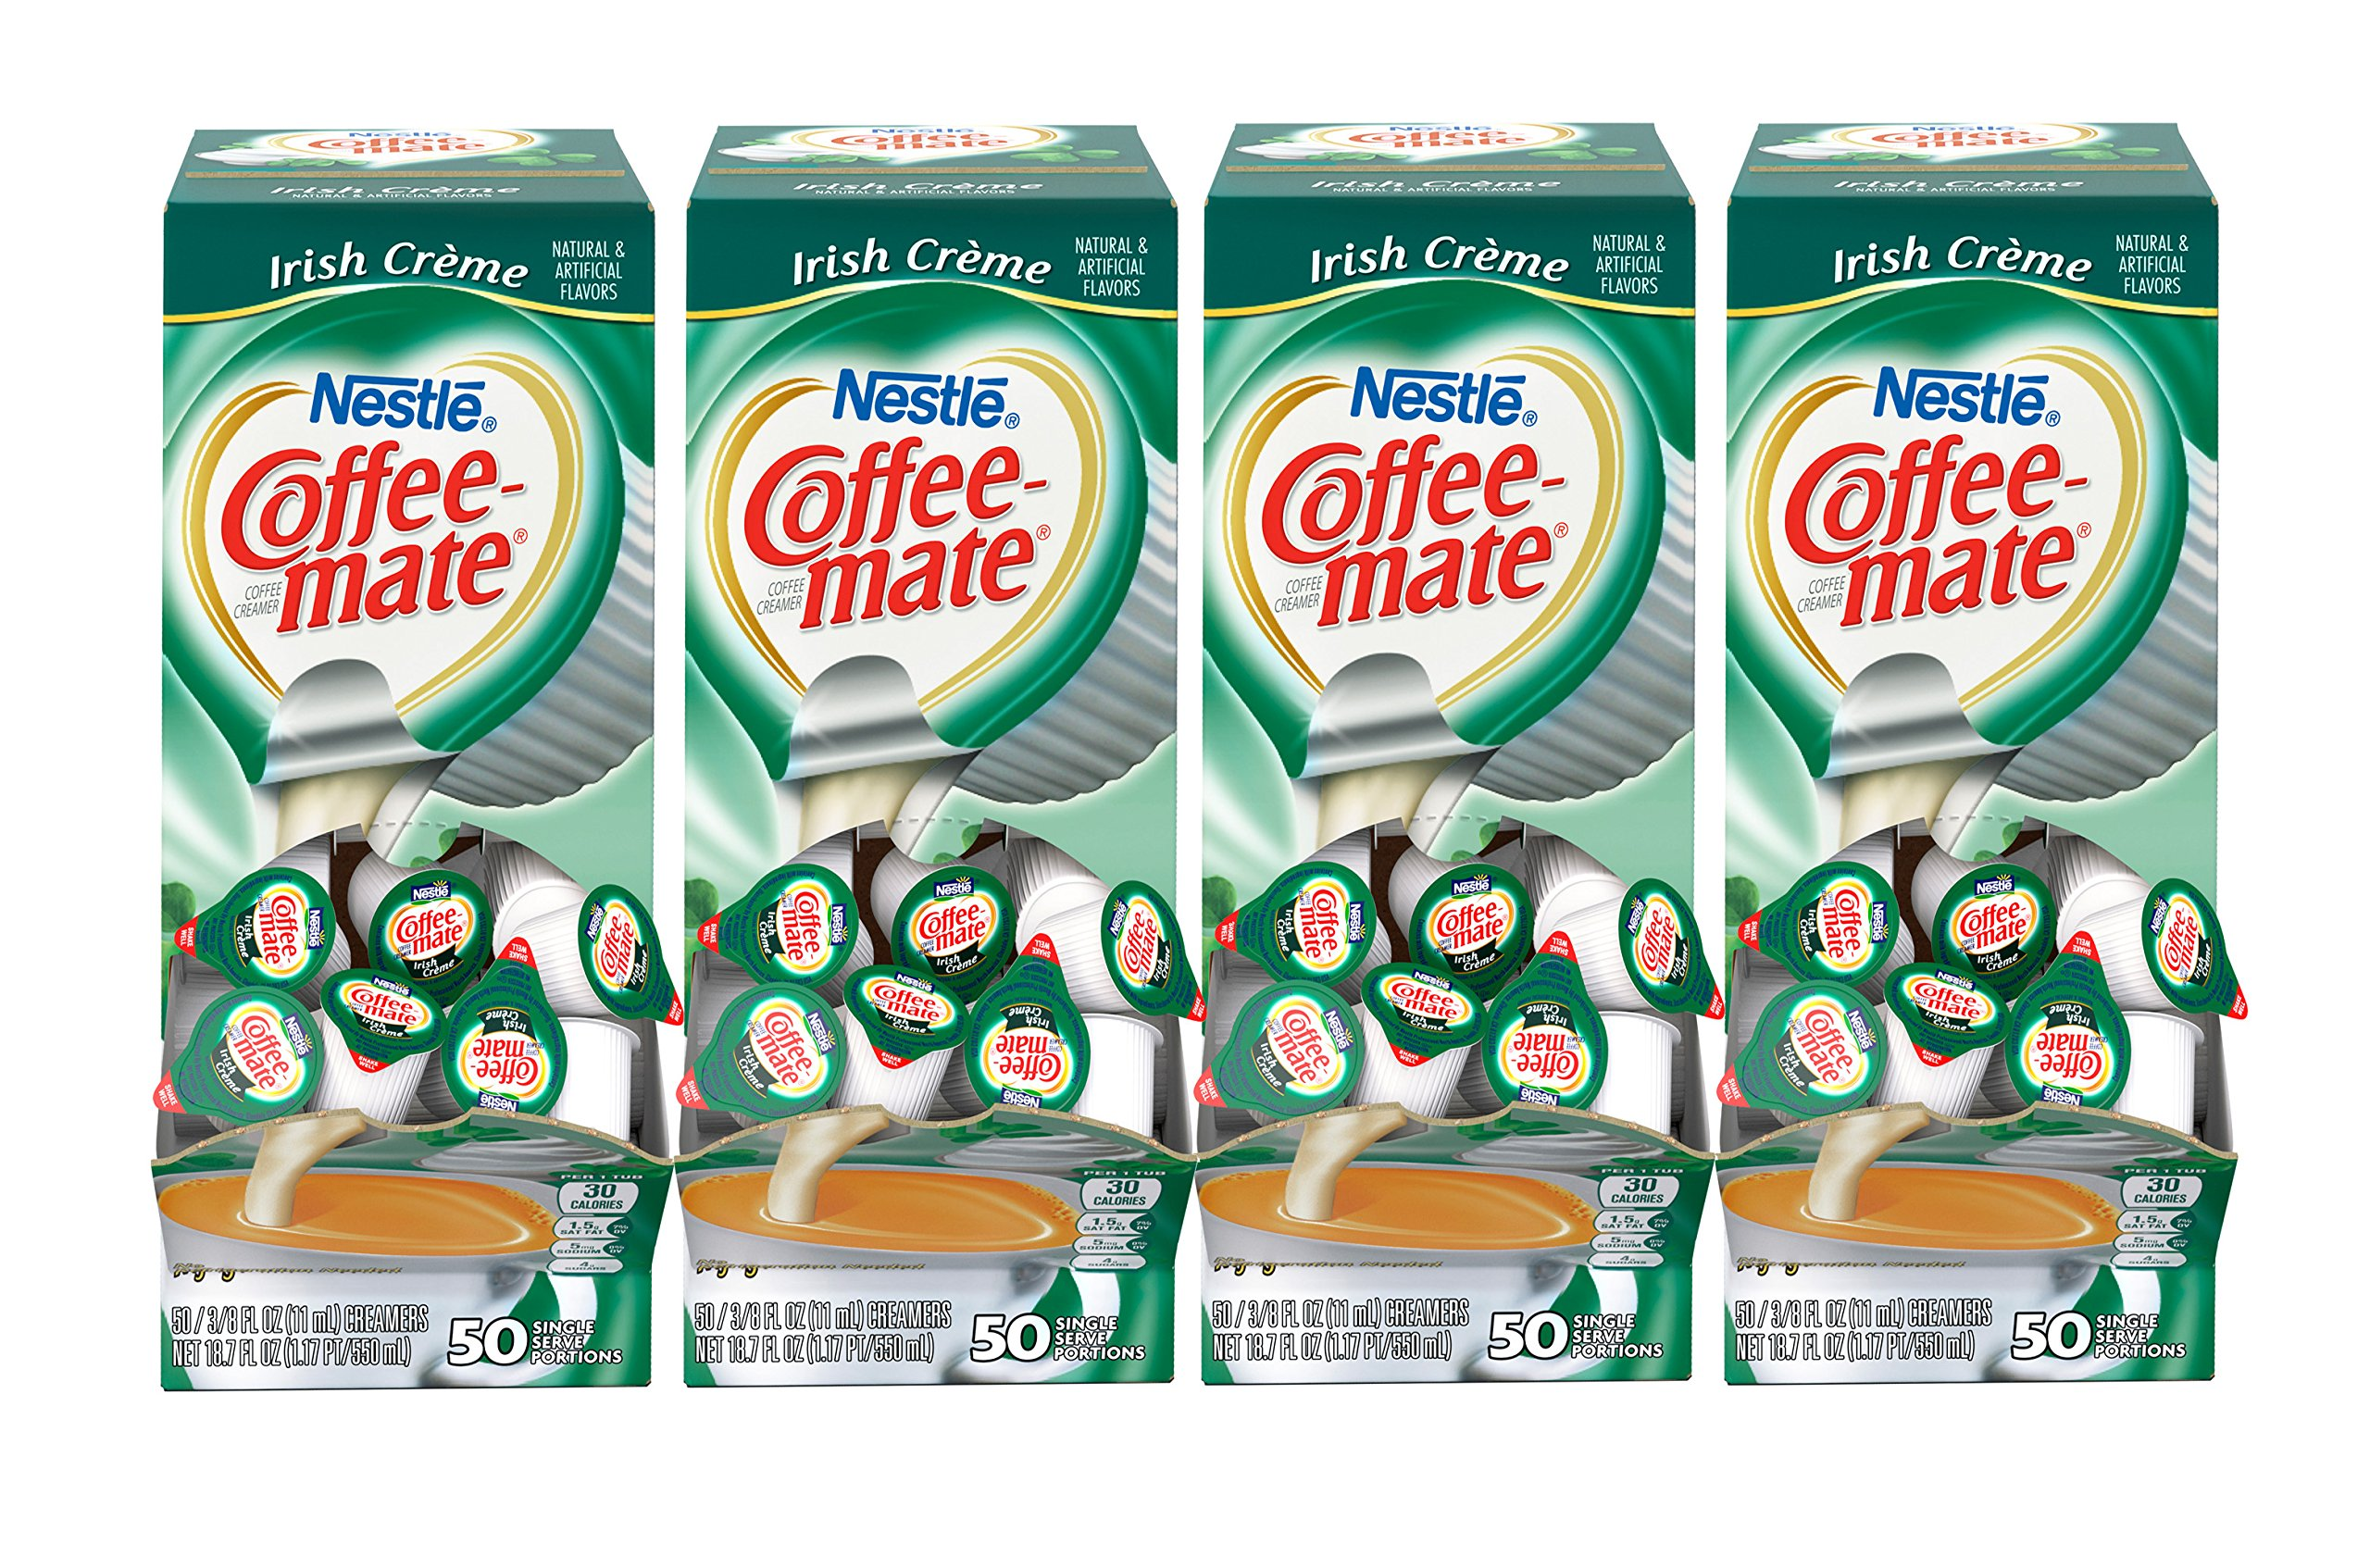 NESTLE COFFEE-MATE Coffee Creamer, Irish Creme, liquid creamer singles, 50 Count (Pack of 4) by Nestle Coffee Mate